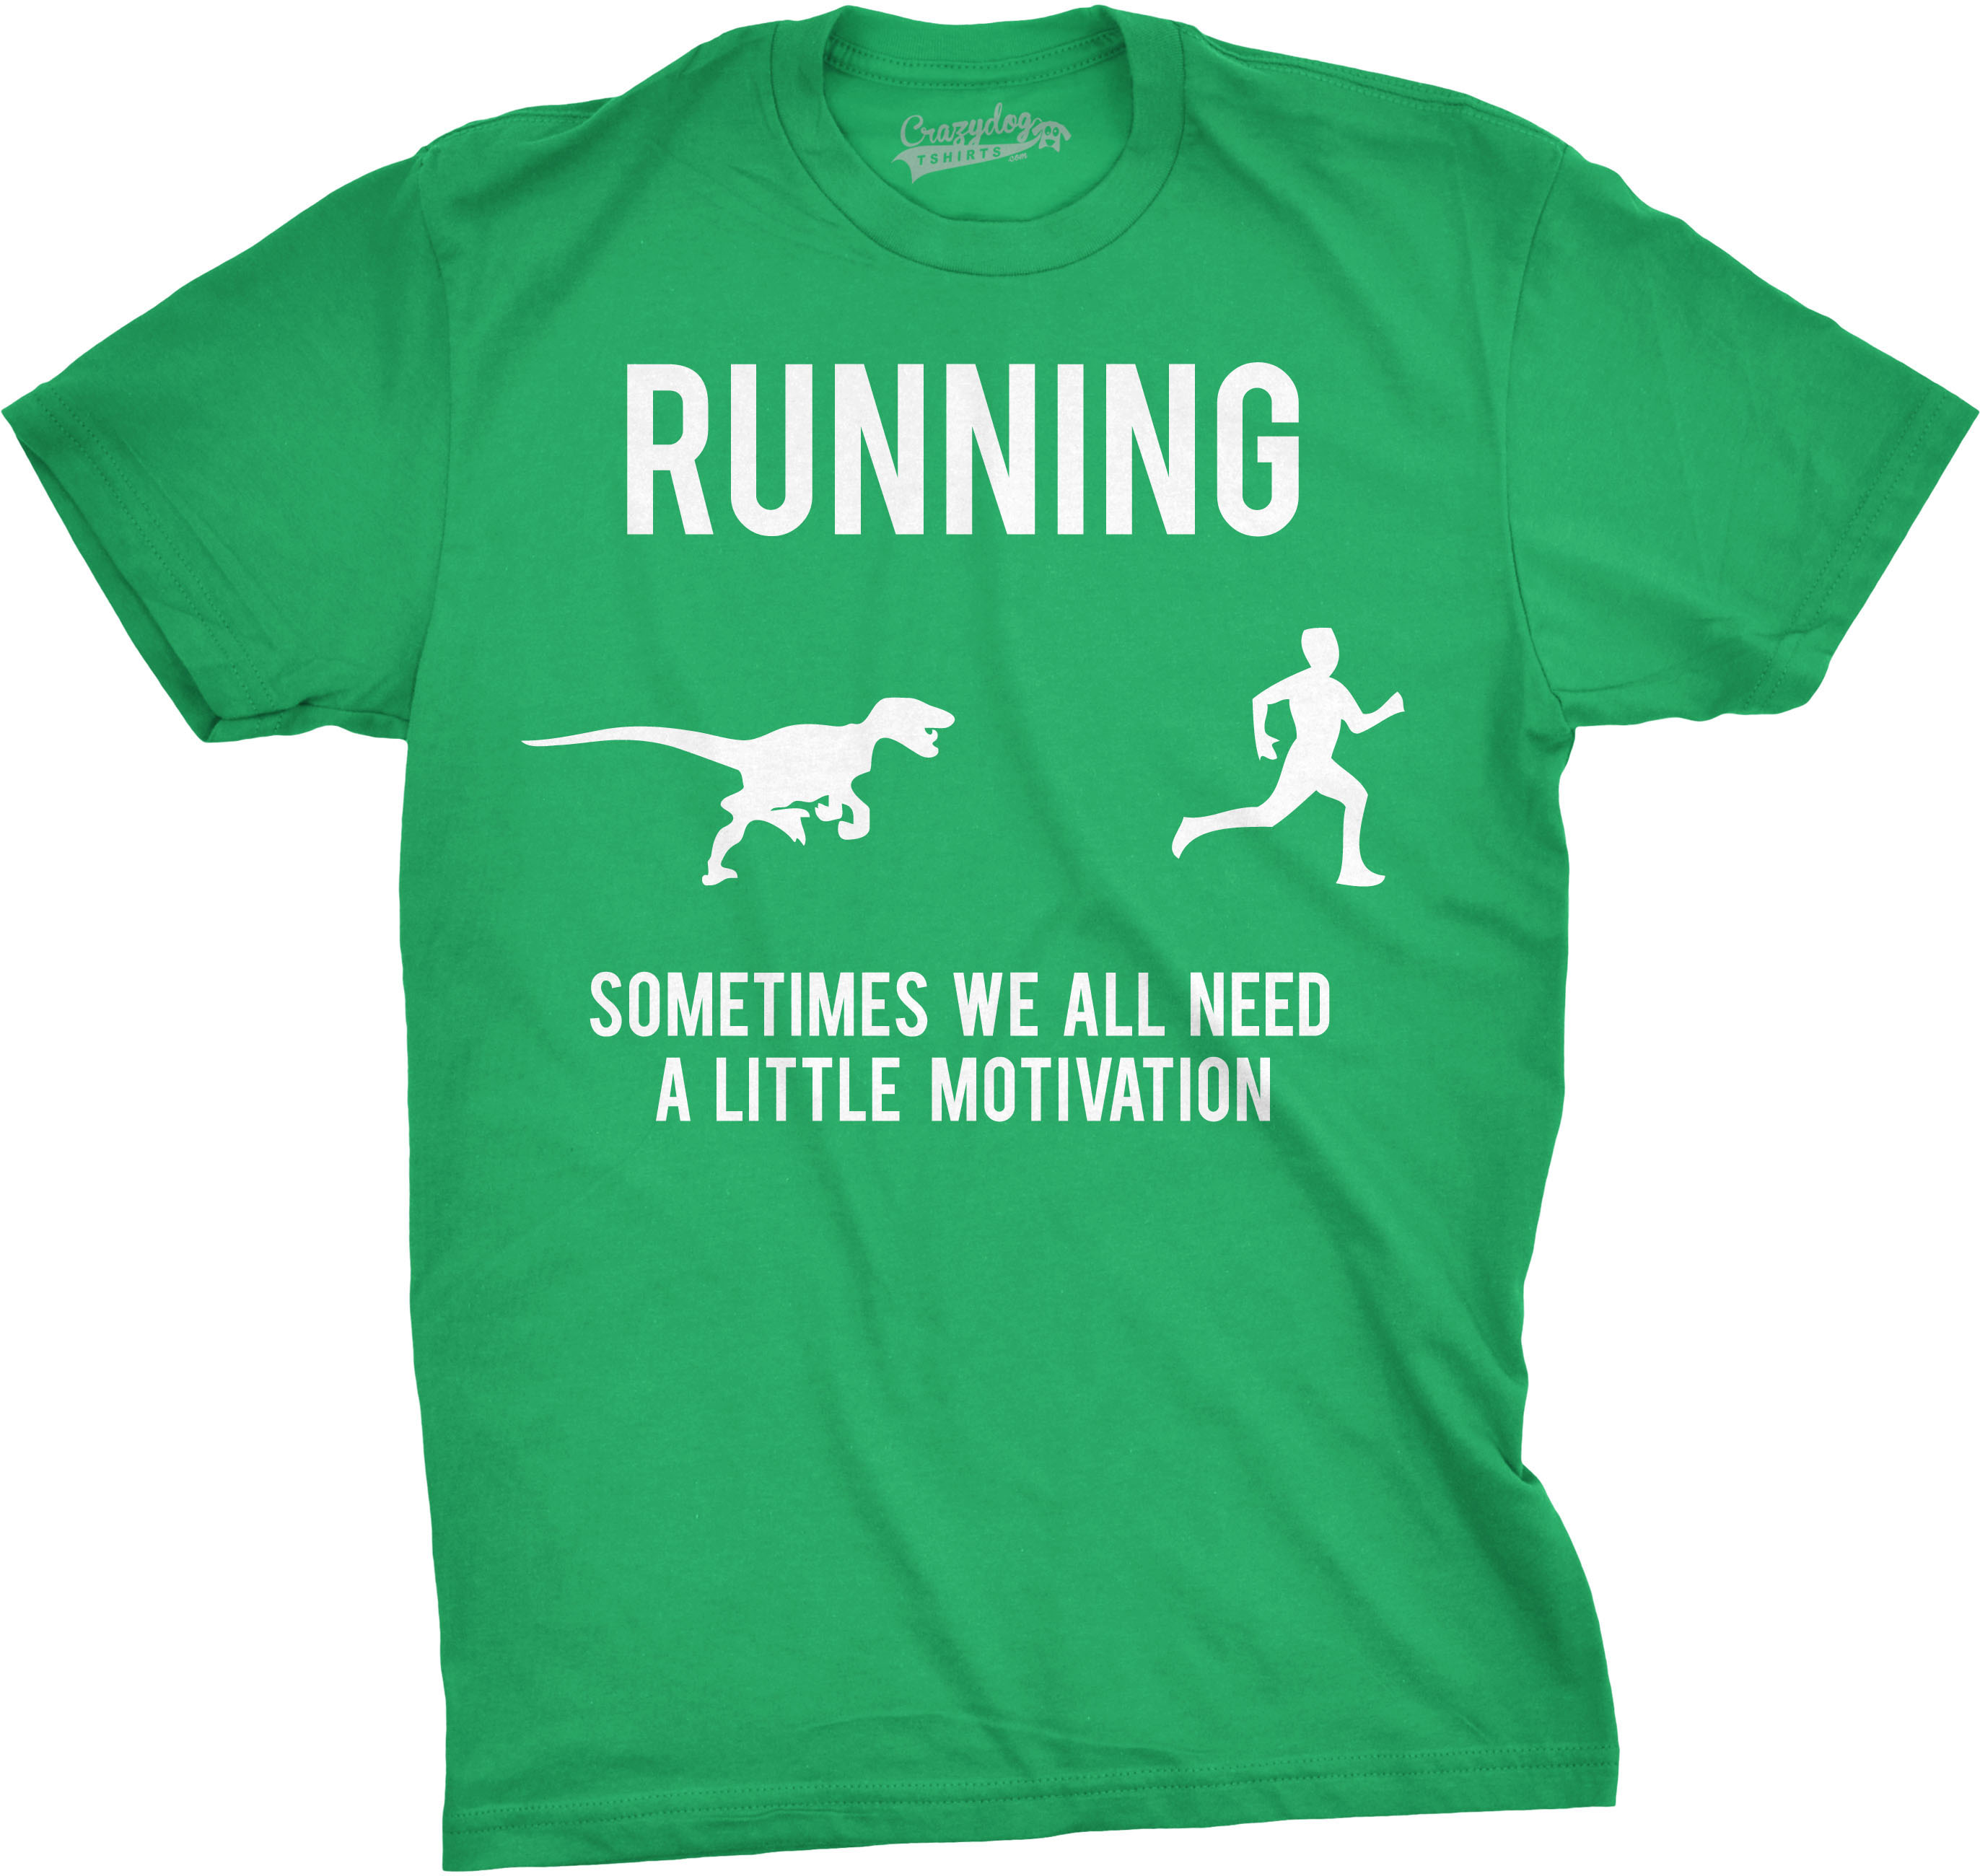 Cool Cross Country T Shirt Designs